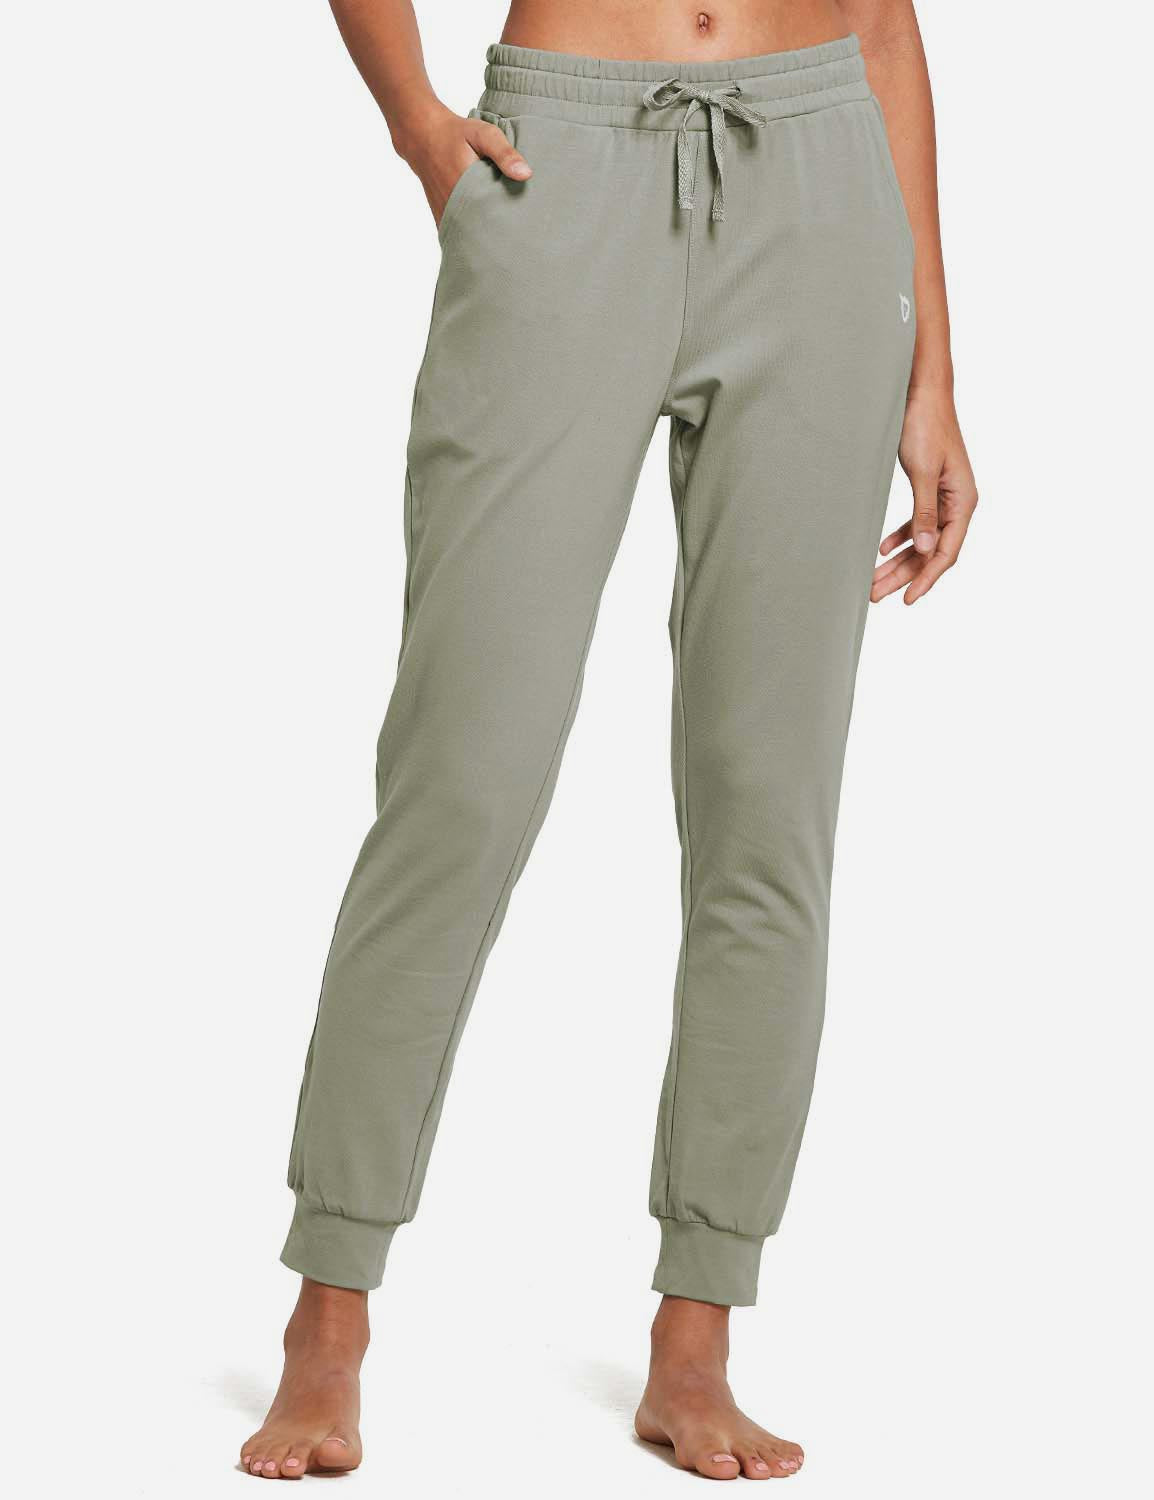 Baleaf Womens Cotton Comfy Pocketed & Tapered Weekend Joggers Spray Green Front